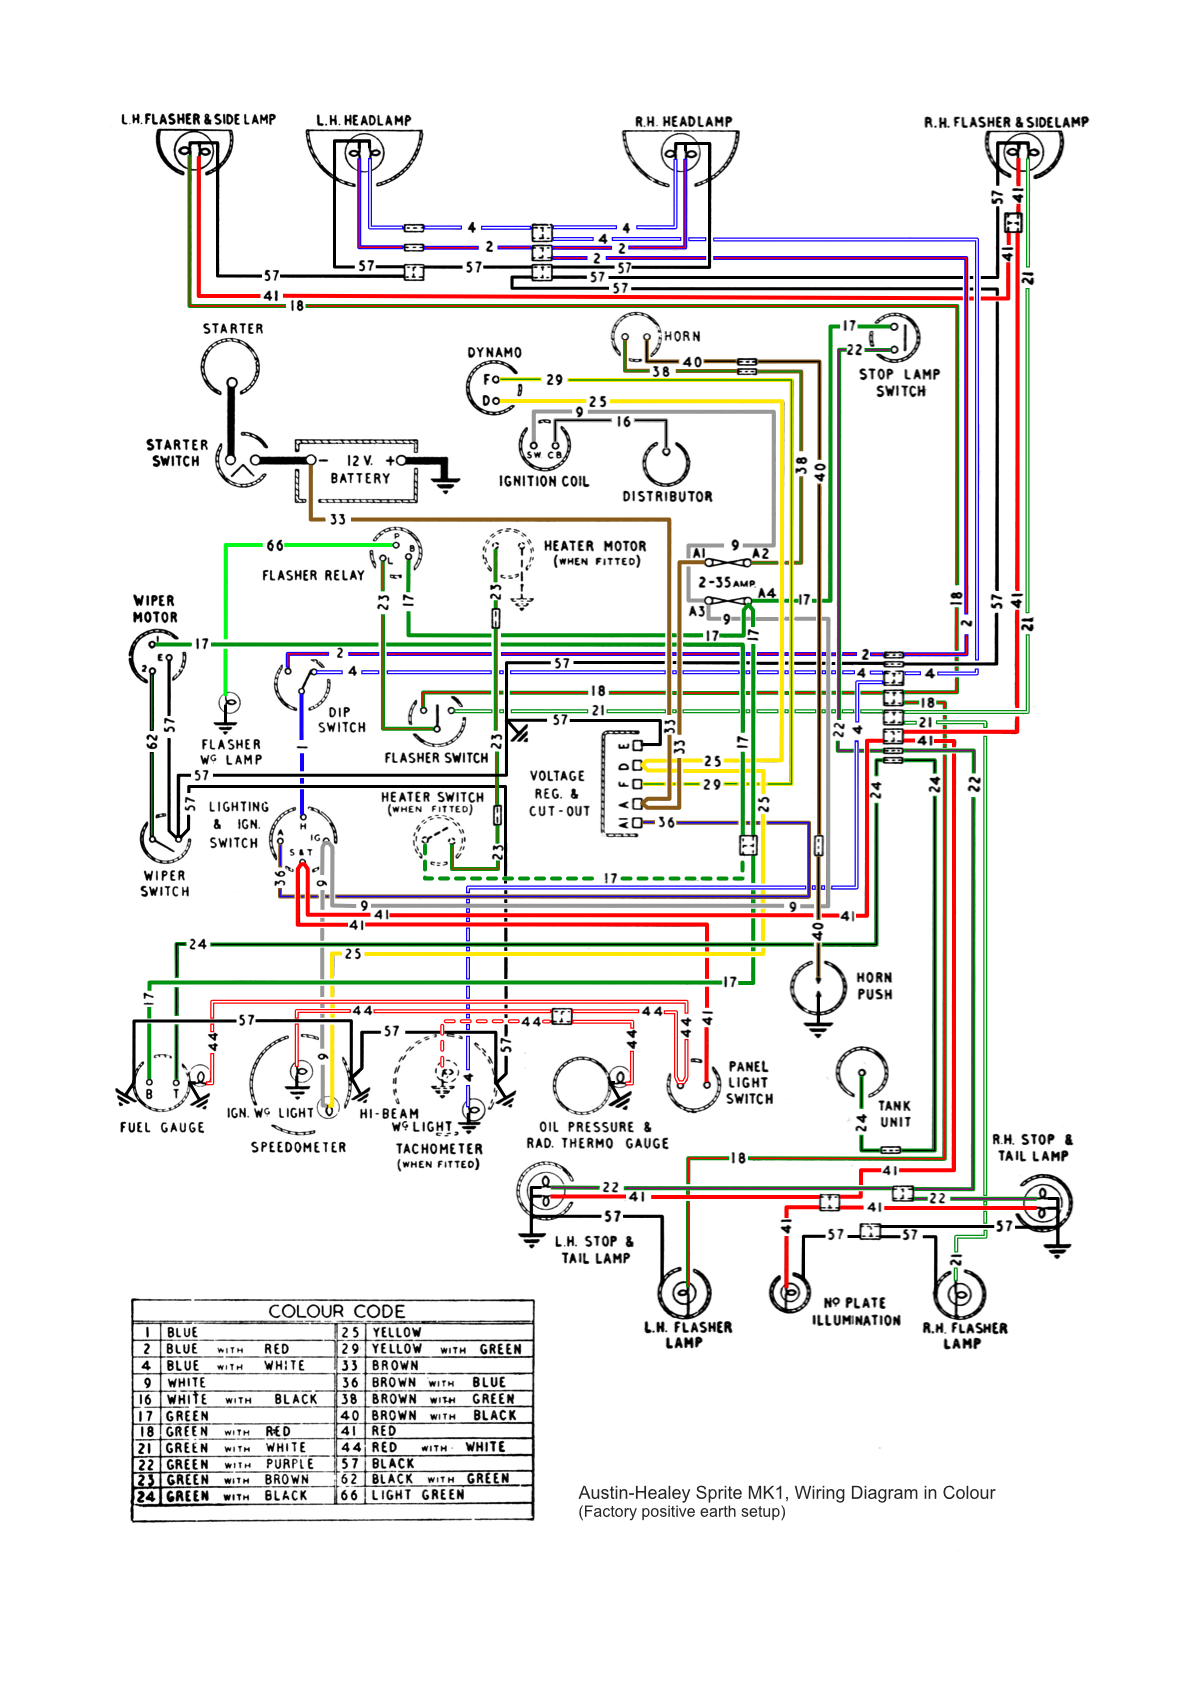 a correction to that color coded bugeye wiring diagram the sprite chevy 350 ignition  wiring diagram